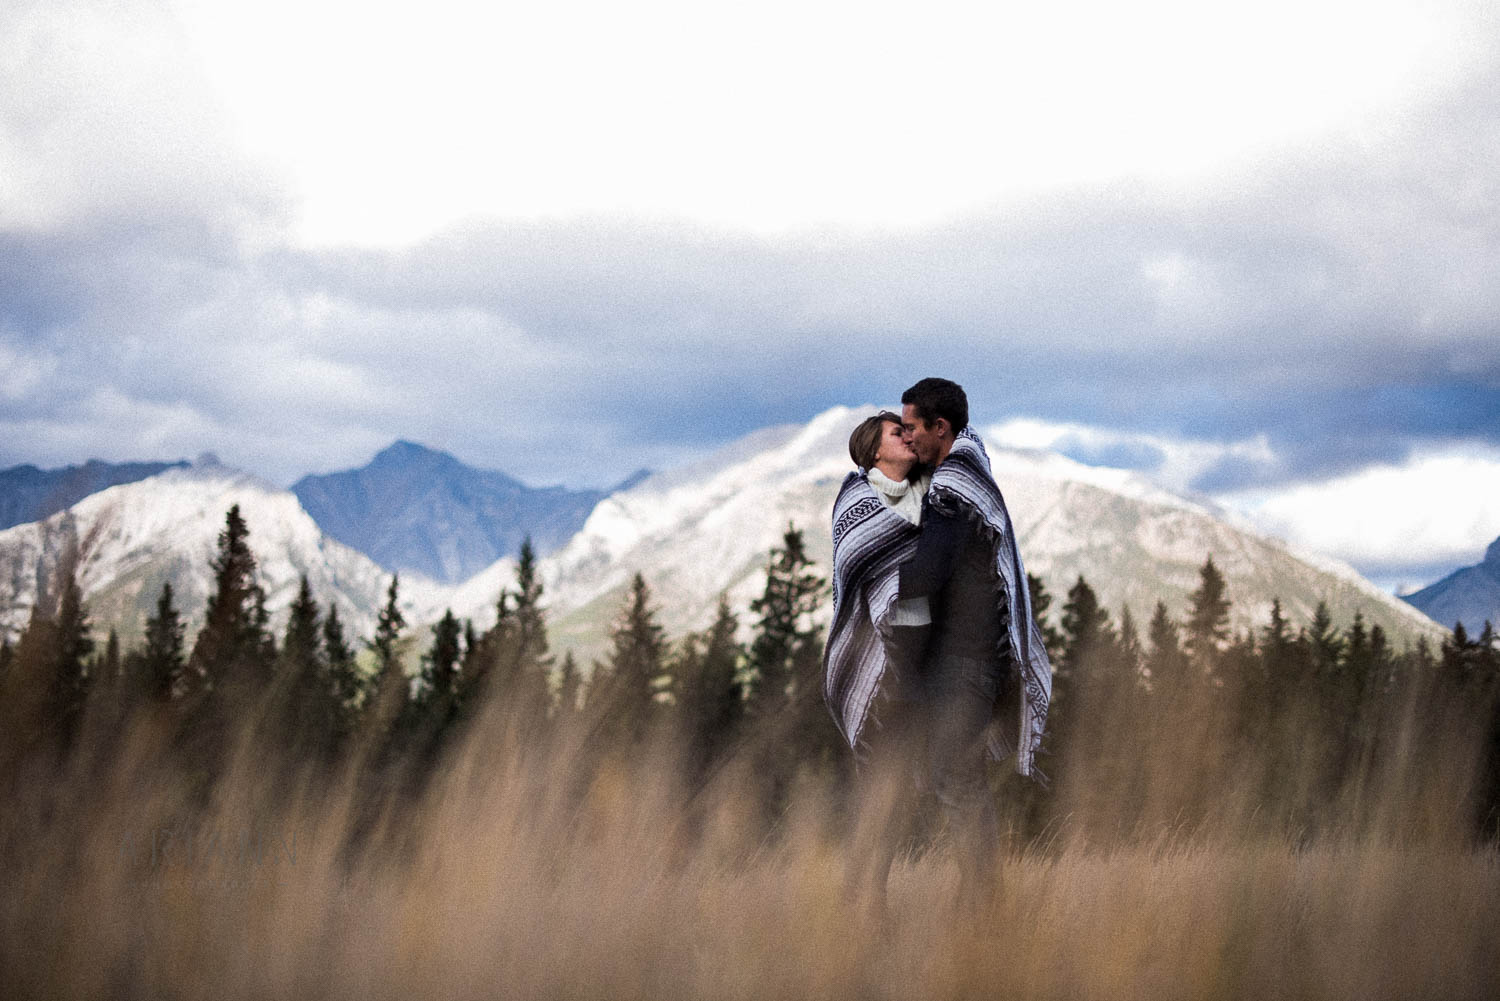 kiss in front of the mountains